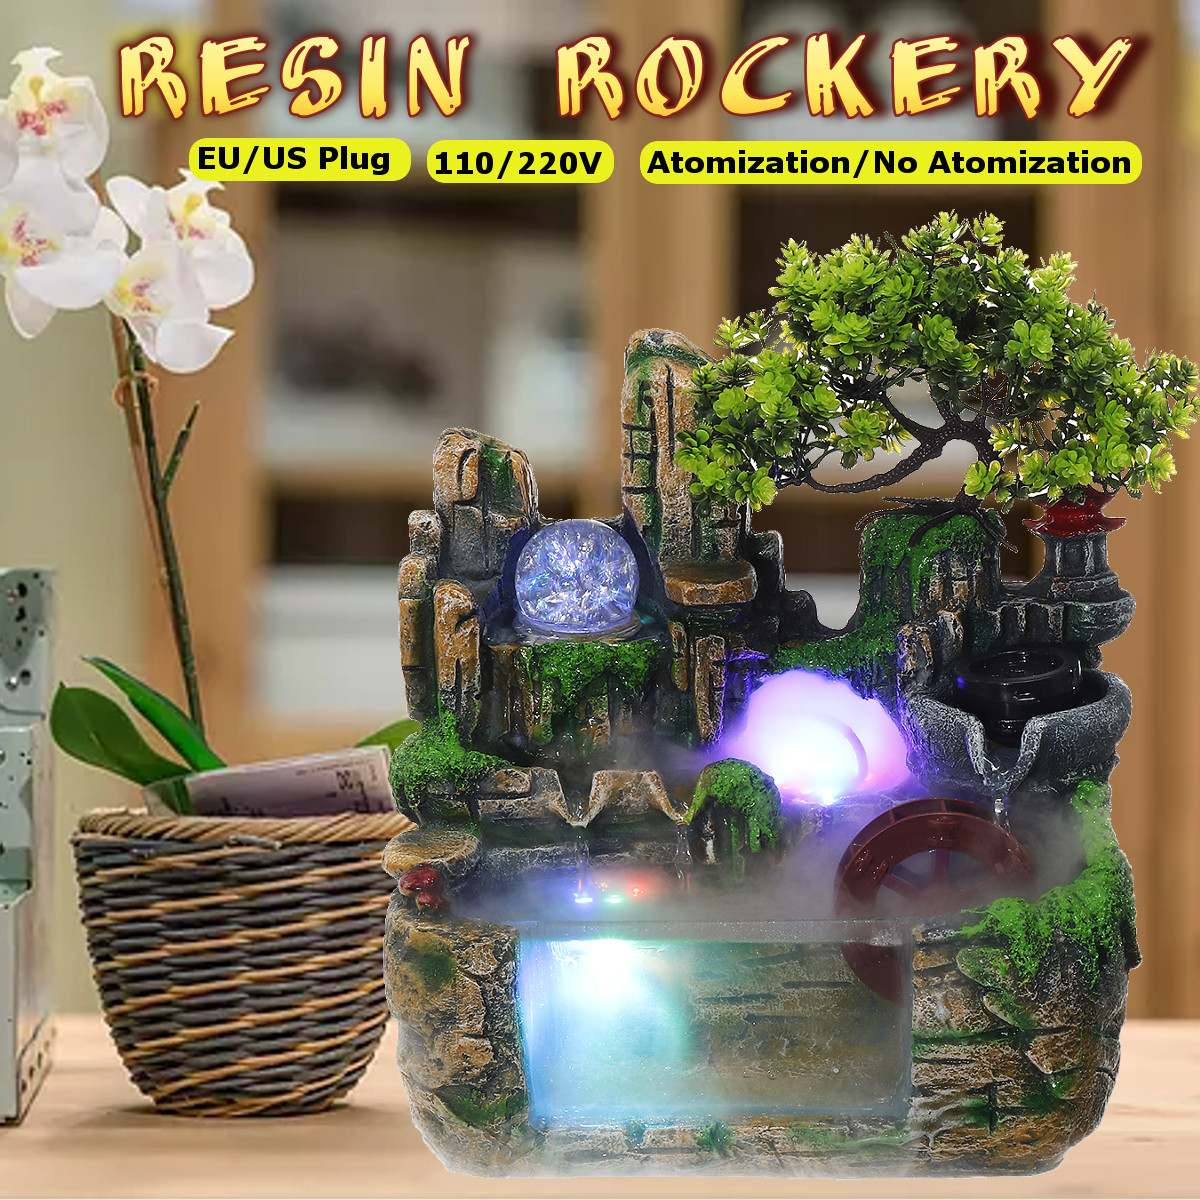 LED Lights Resin Rockery Flowing <font><b>Water</b></font> <font><b>Fountain</b></font> Lucky Feng Shui Wheel Office Desktop Ornaments With Nebulizer <font><b>Home</b></font> <font><b>Decoration</b></font> image